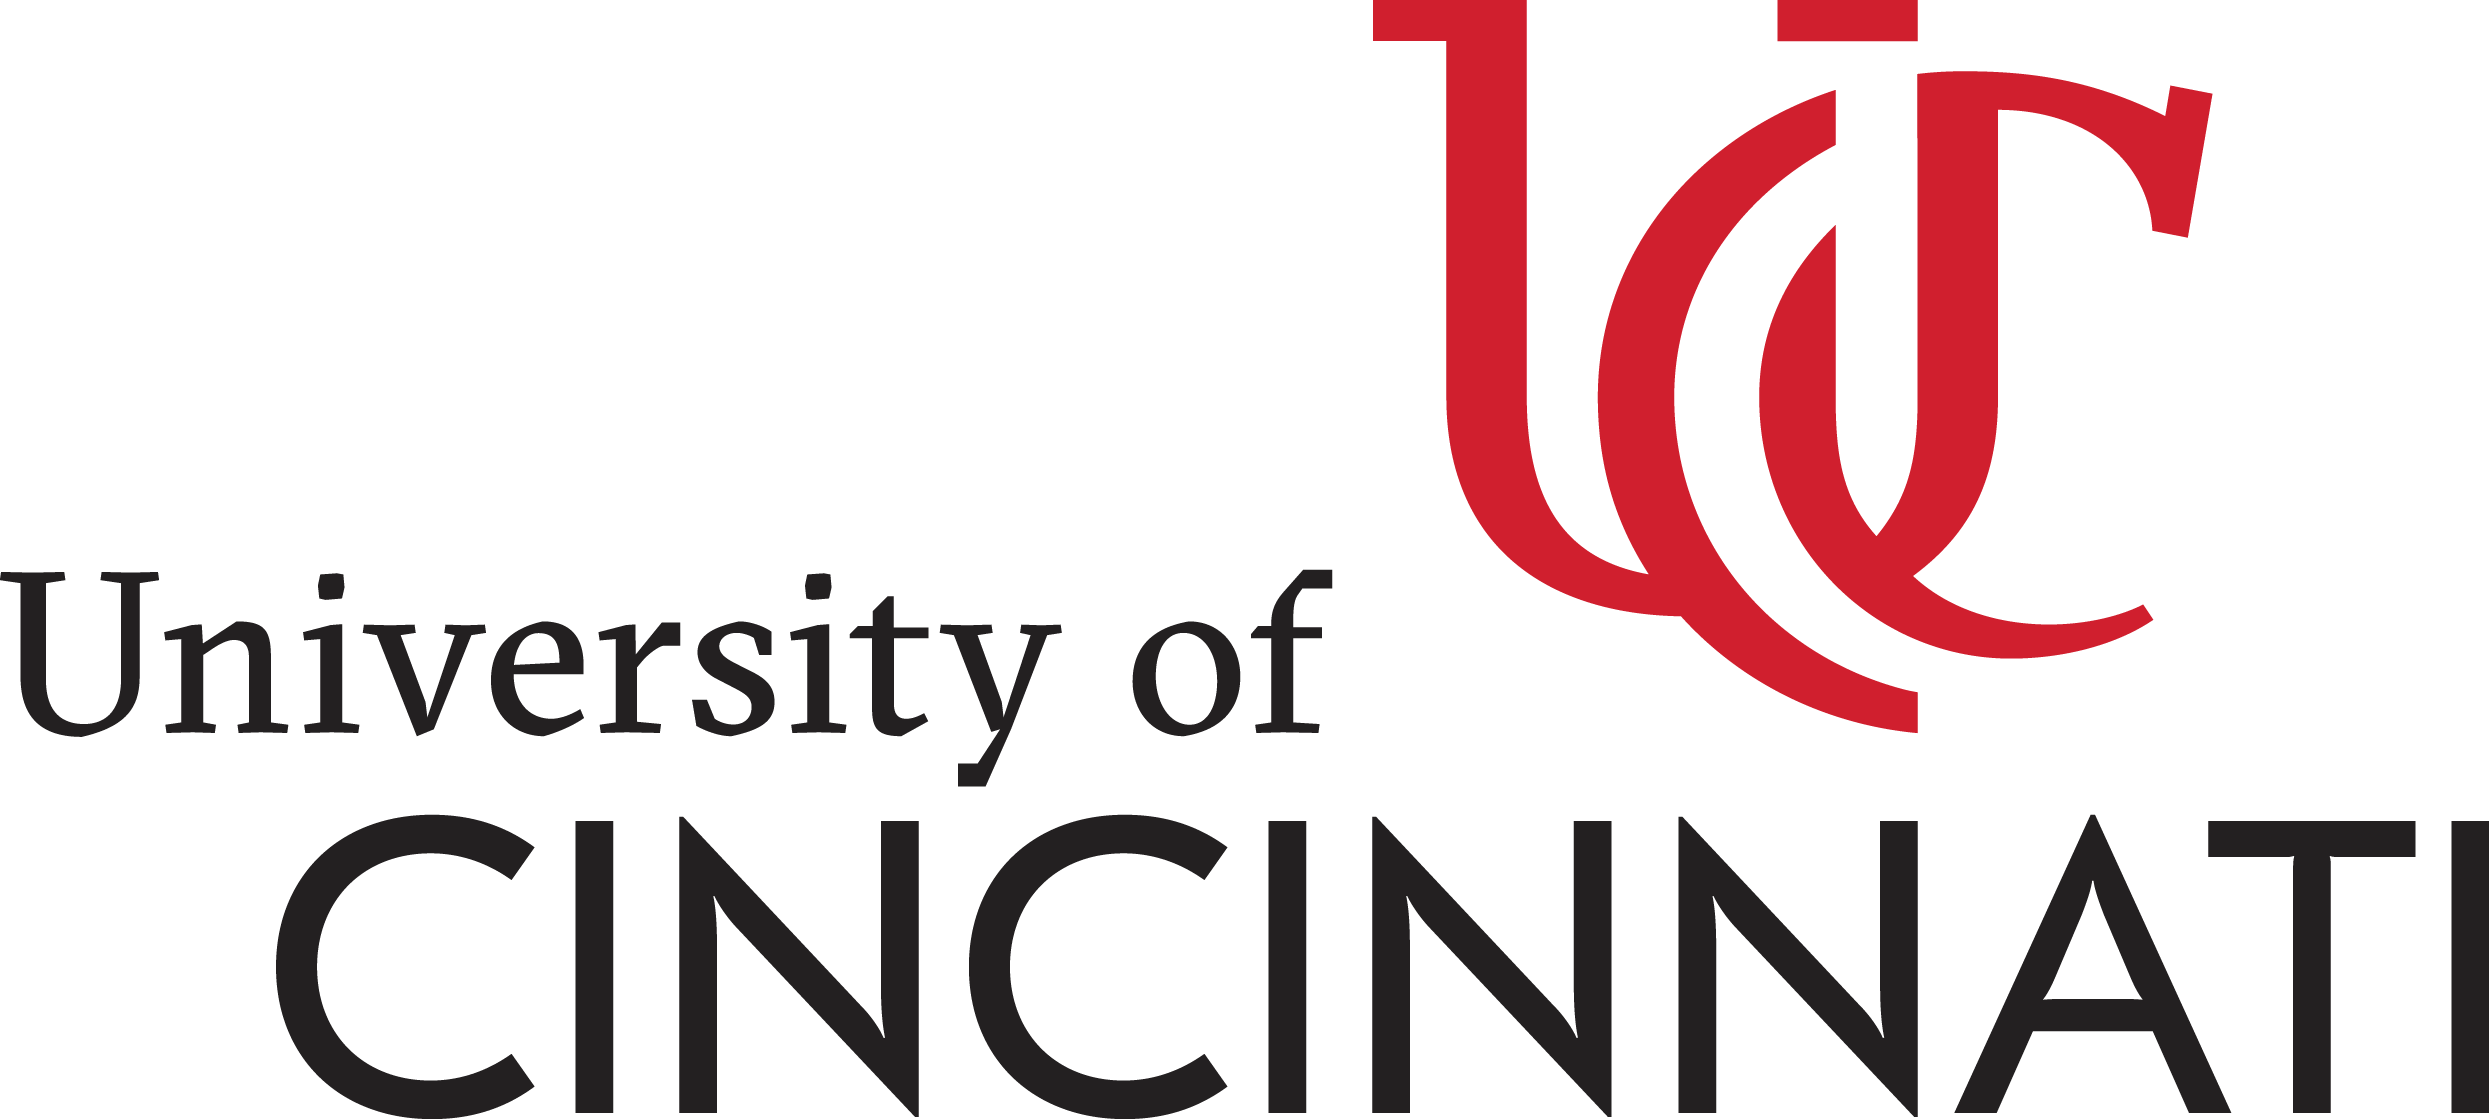 university-of-cincinnati-logo.png